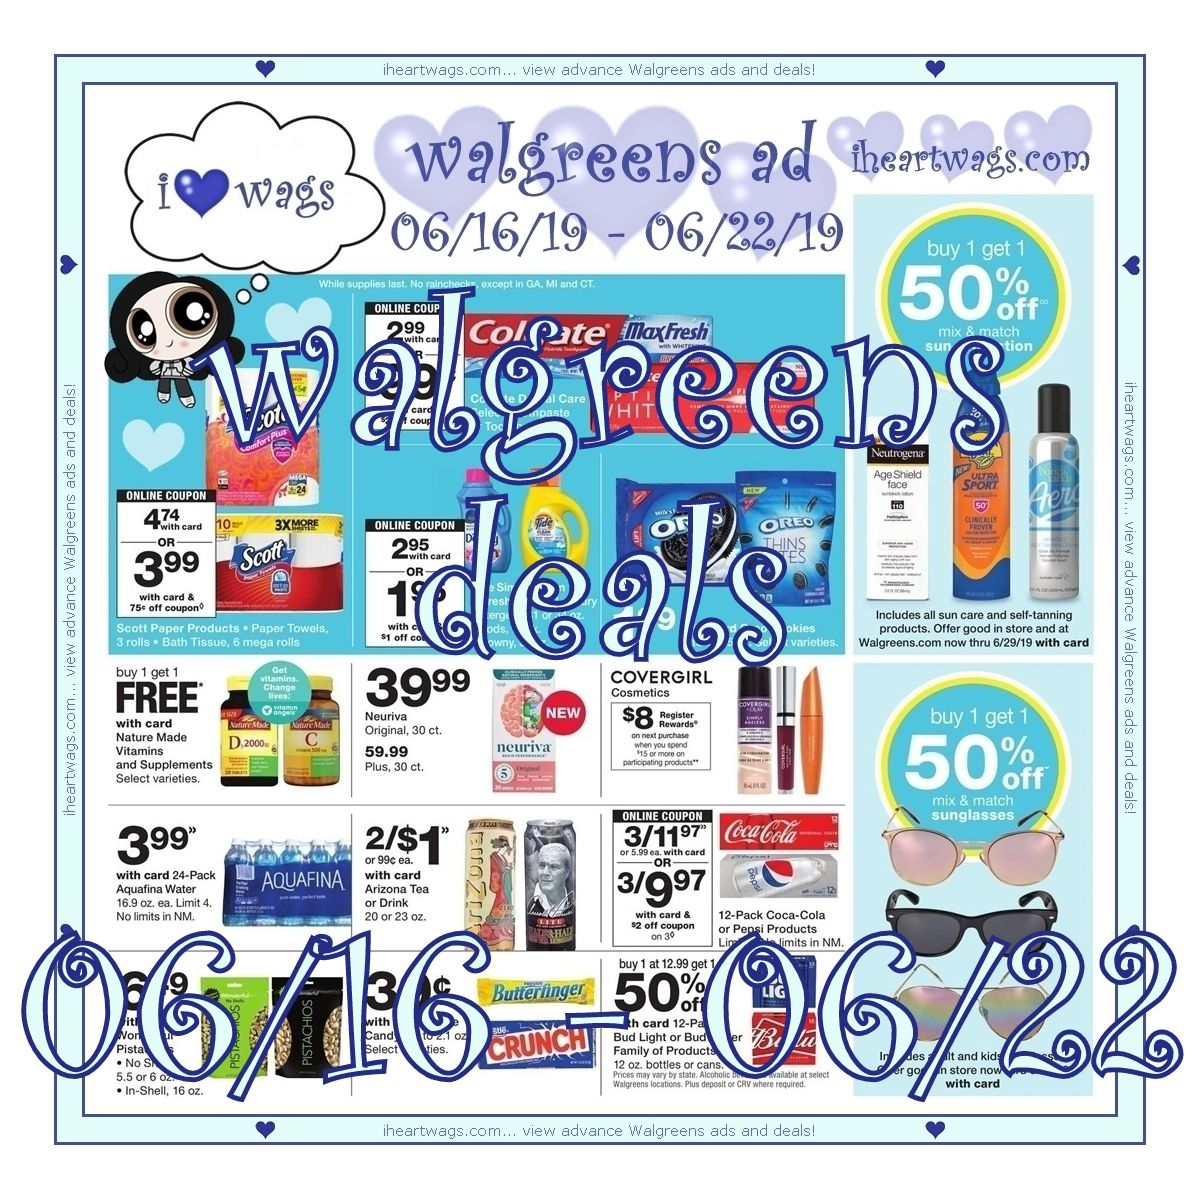 Pin by Erica Hart on i ♥ wags (walgreens) Covergirl